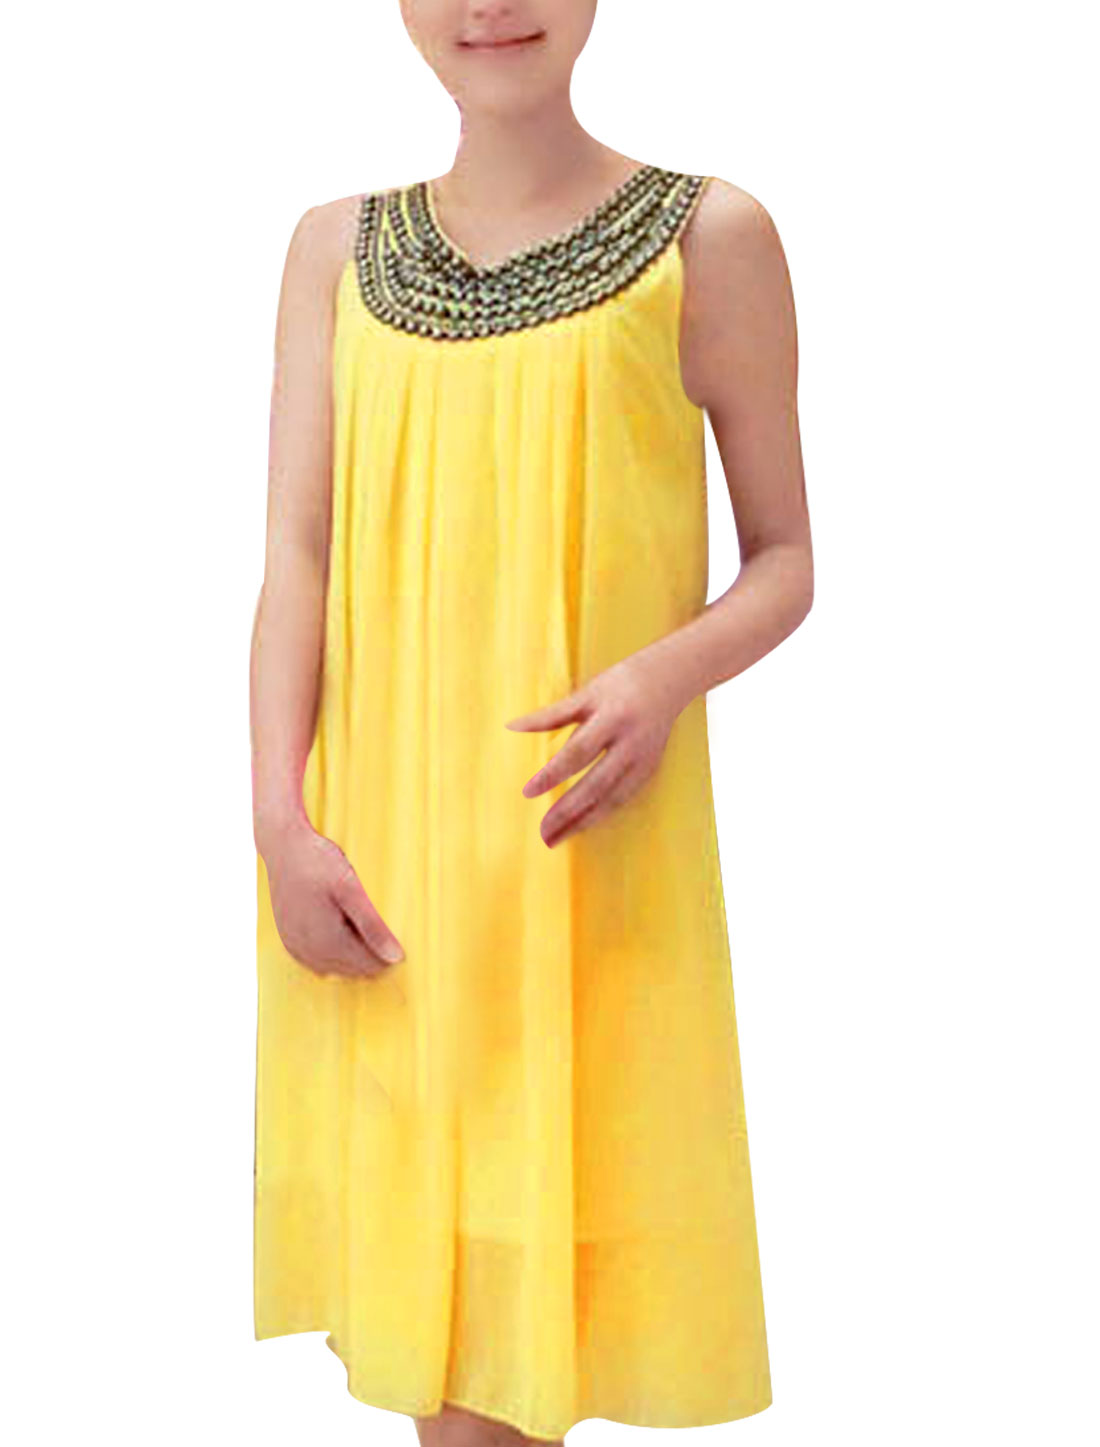 Ladies Chiffon Metal Decor Belted Pleated Fashion Tank Dress Yellow S